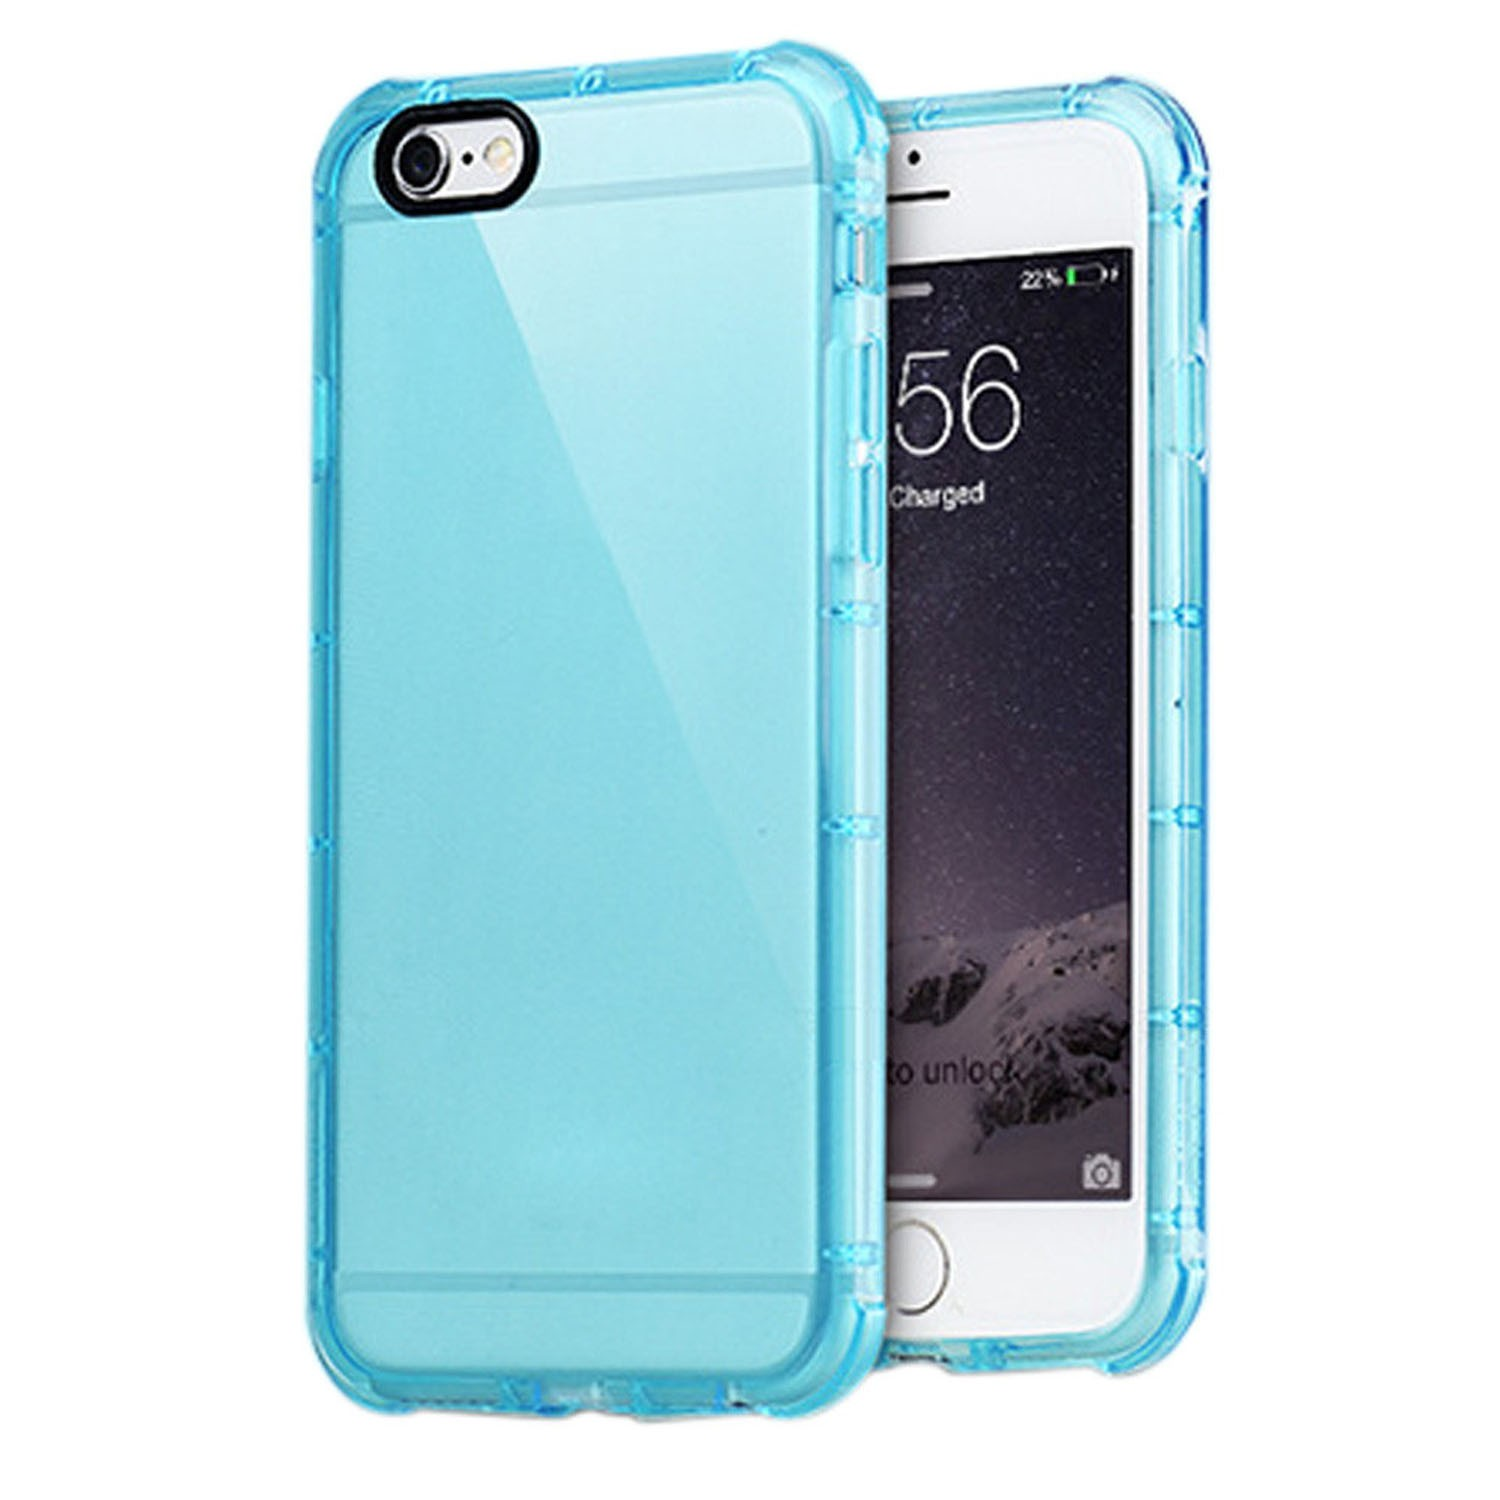 Yemota Pro Hybrid Case iPhone 6 / 6s - Blau